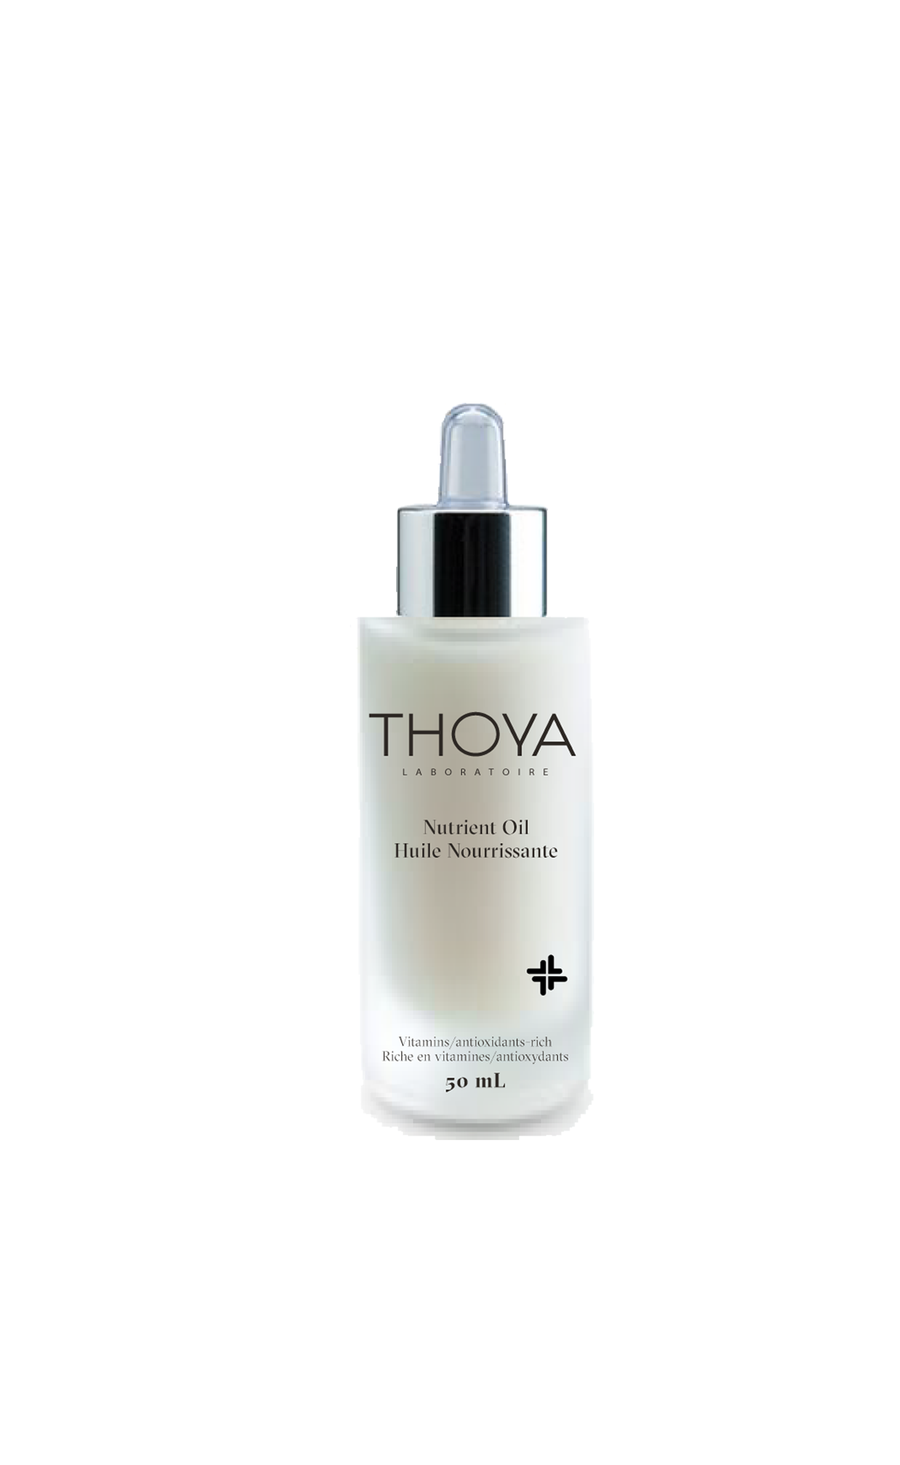 Thoya Nutrient Skin care oil – Dry oil – vitamins and antioxidants - Best all natural skincare - Hypoallergernic - Dermatologist tested - Fragrance free